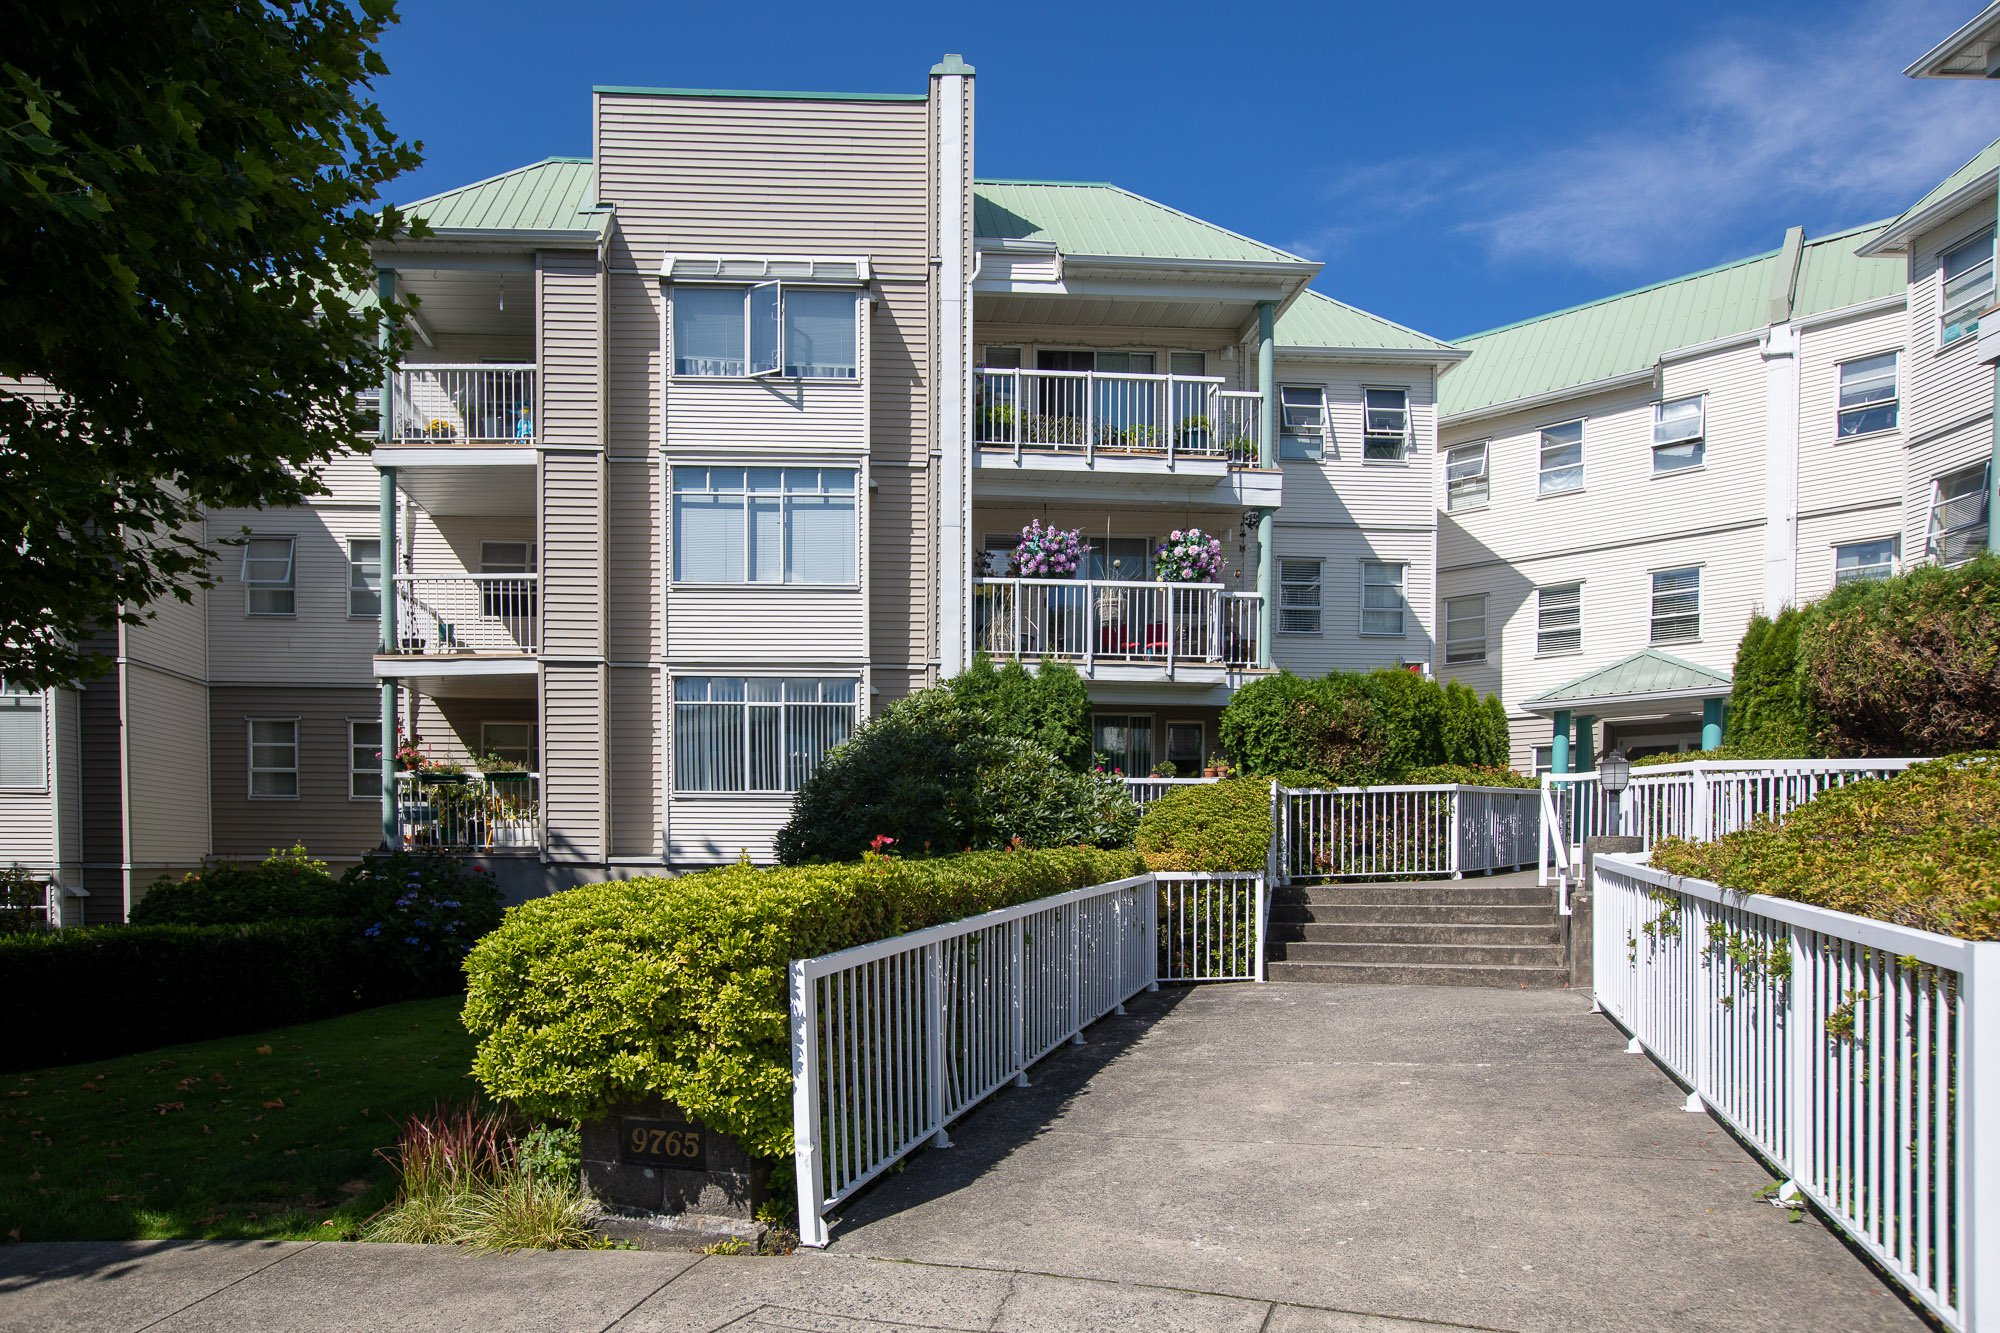 Main Photo: 216 9765 140 Street in : Whalley Condo for sale (Surrey)  : MLS®# R2488767